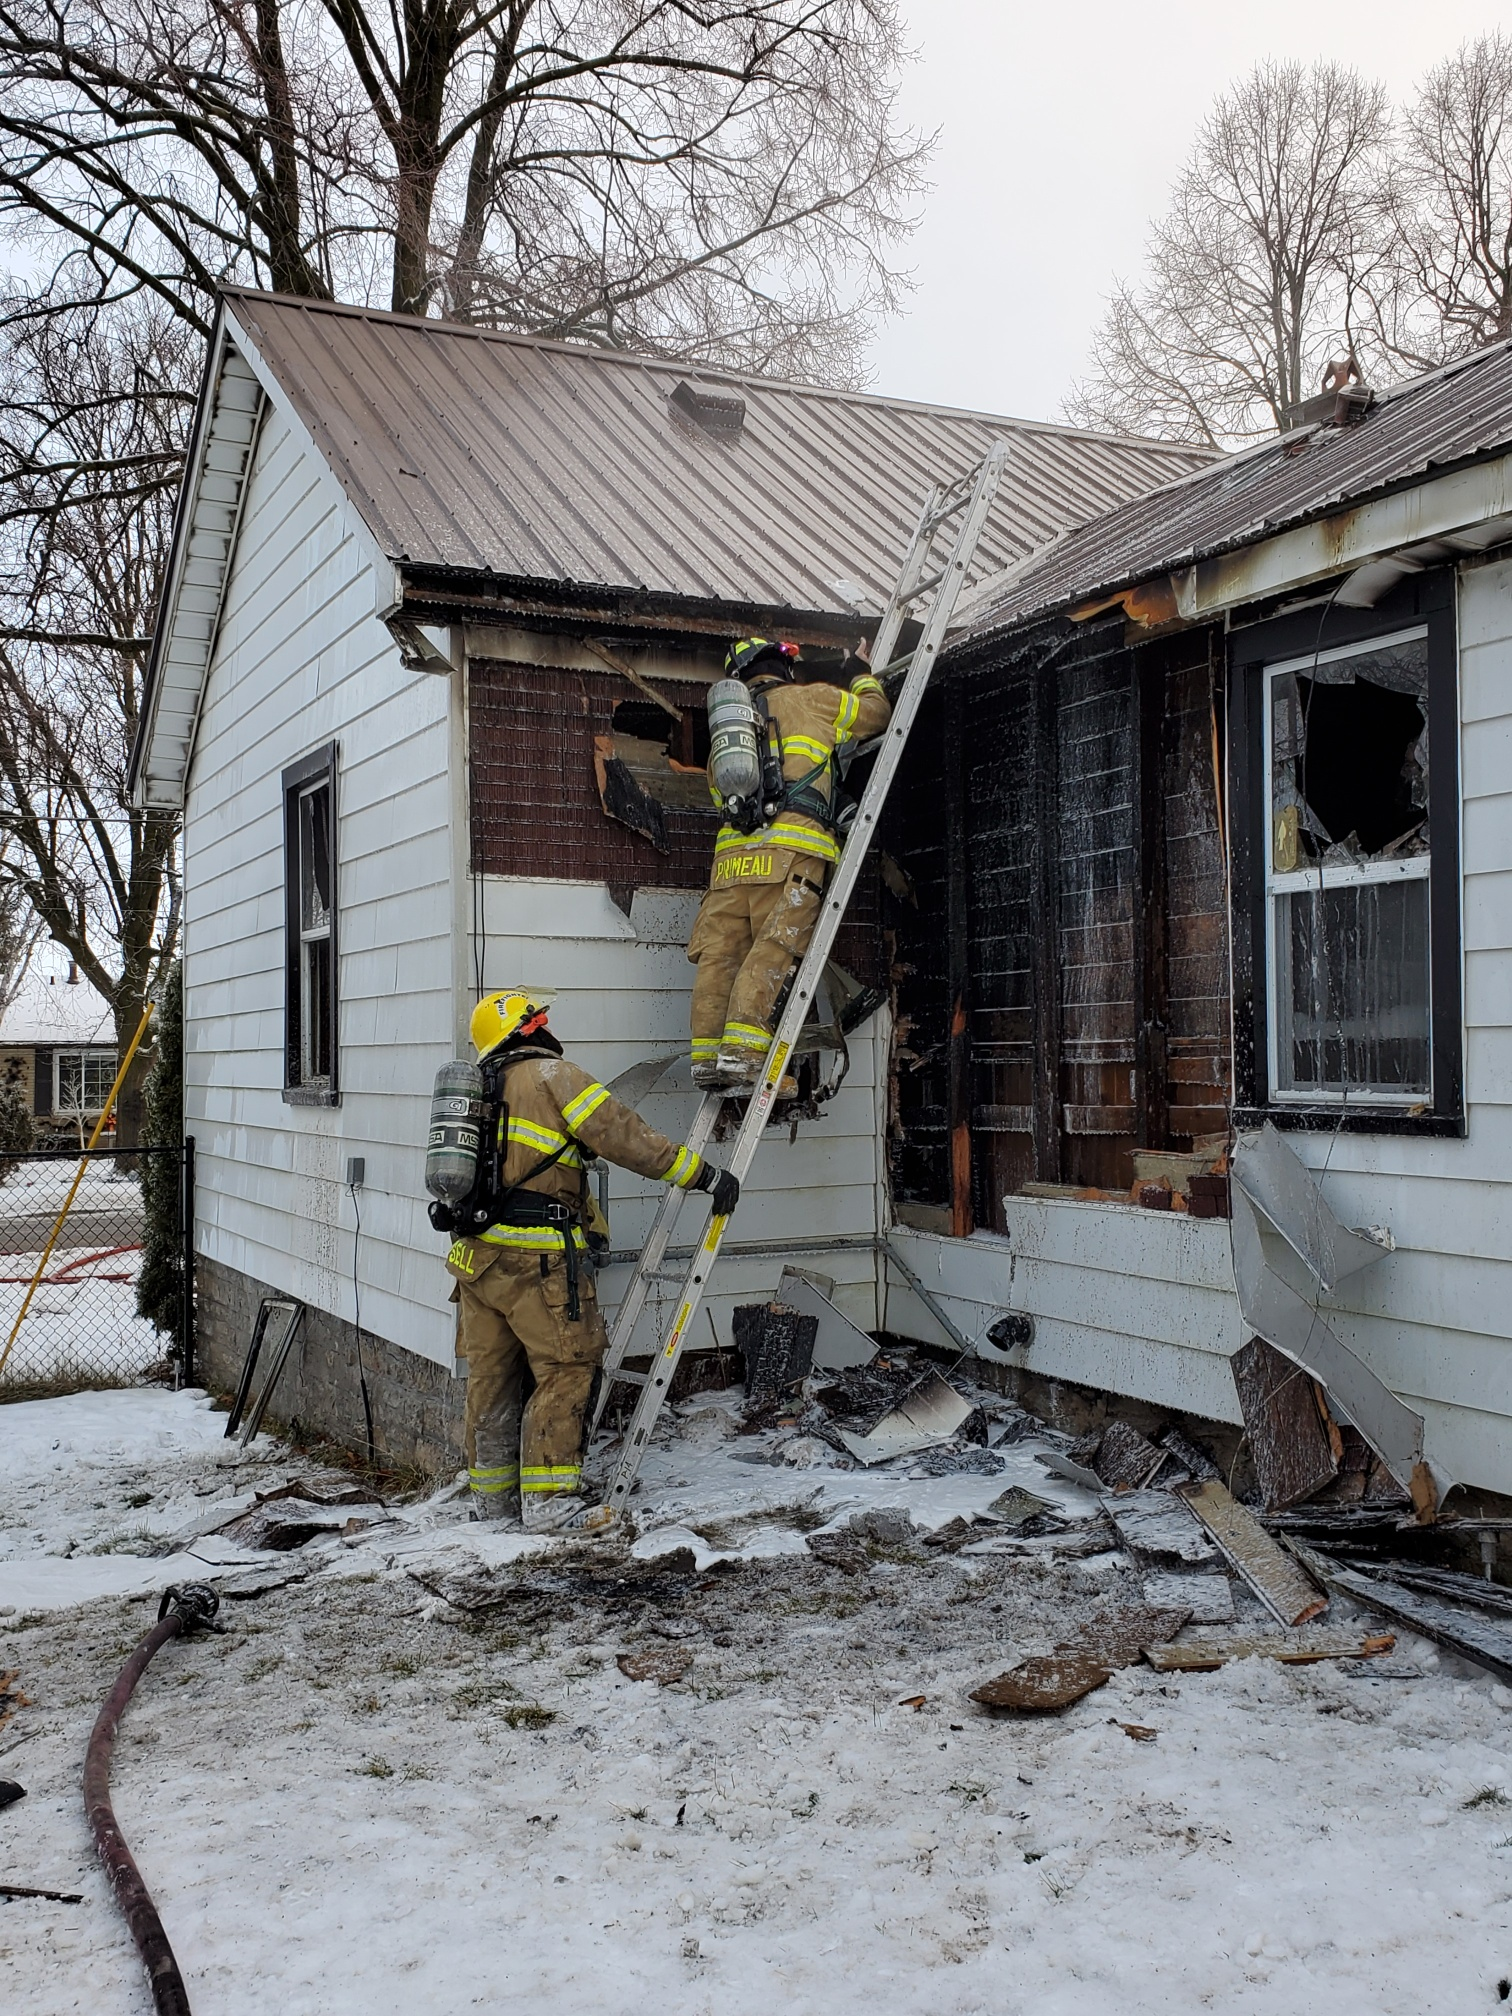 Two St. Marys Firefighters investigate the cause of the recent house fire at 500 Queen Street East.